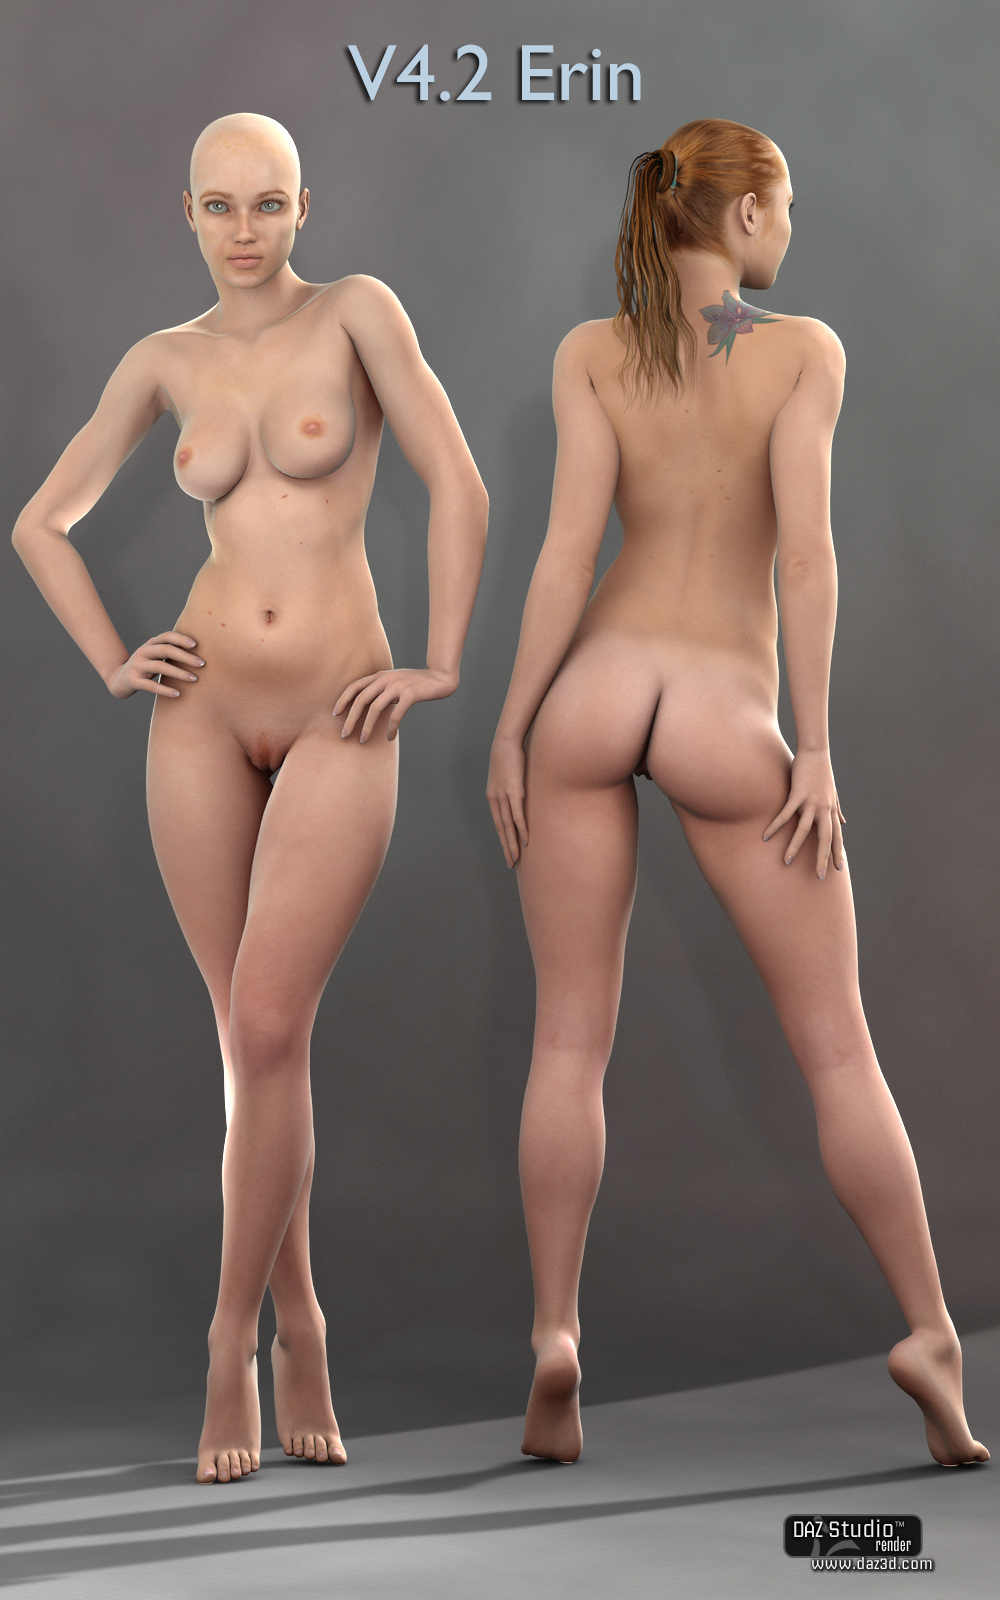 3 d elves more 3 d in my profile - 3 part 9